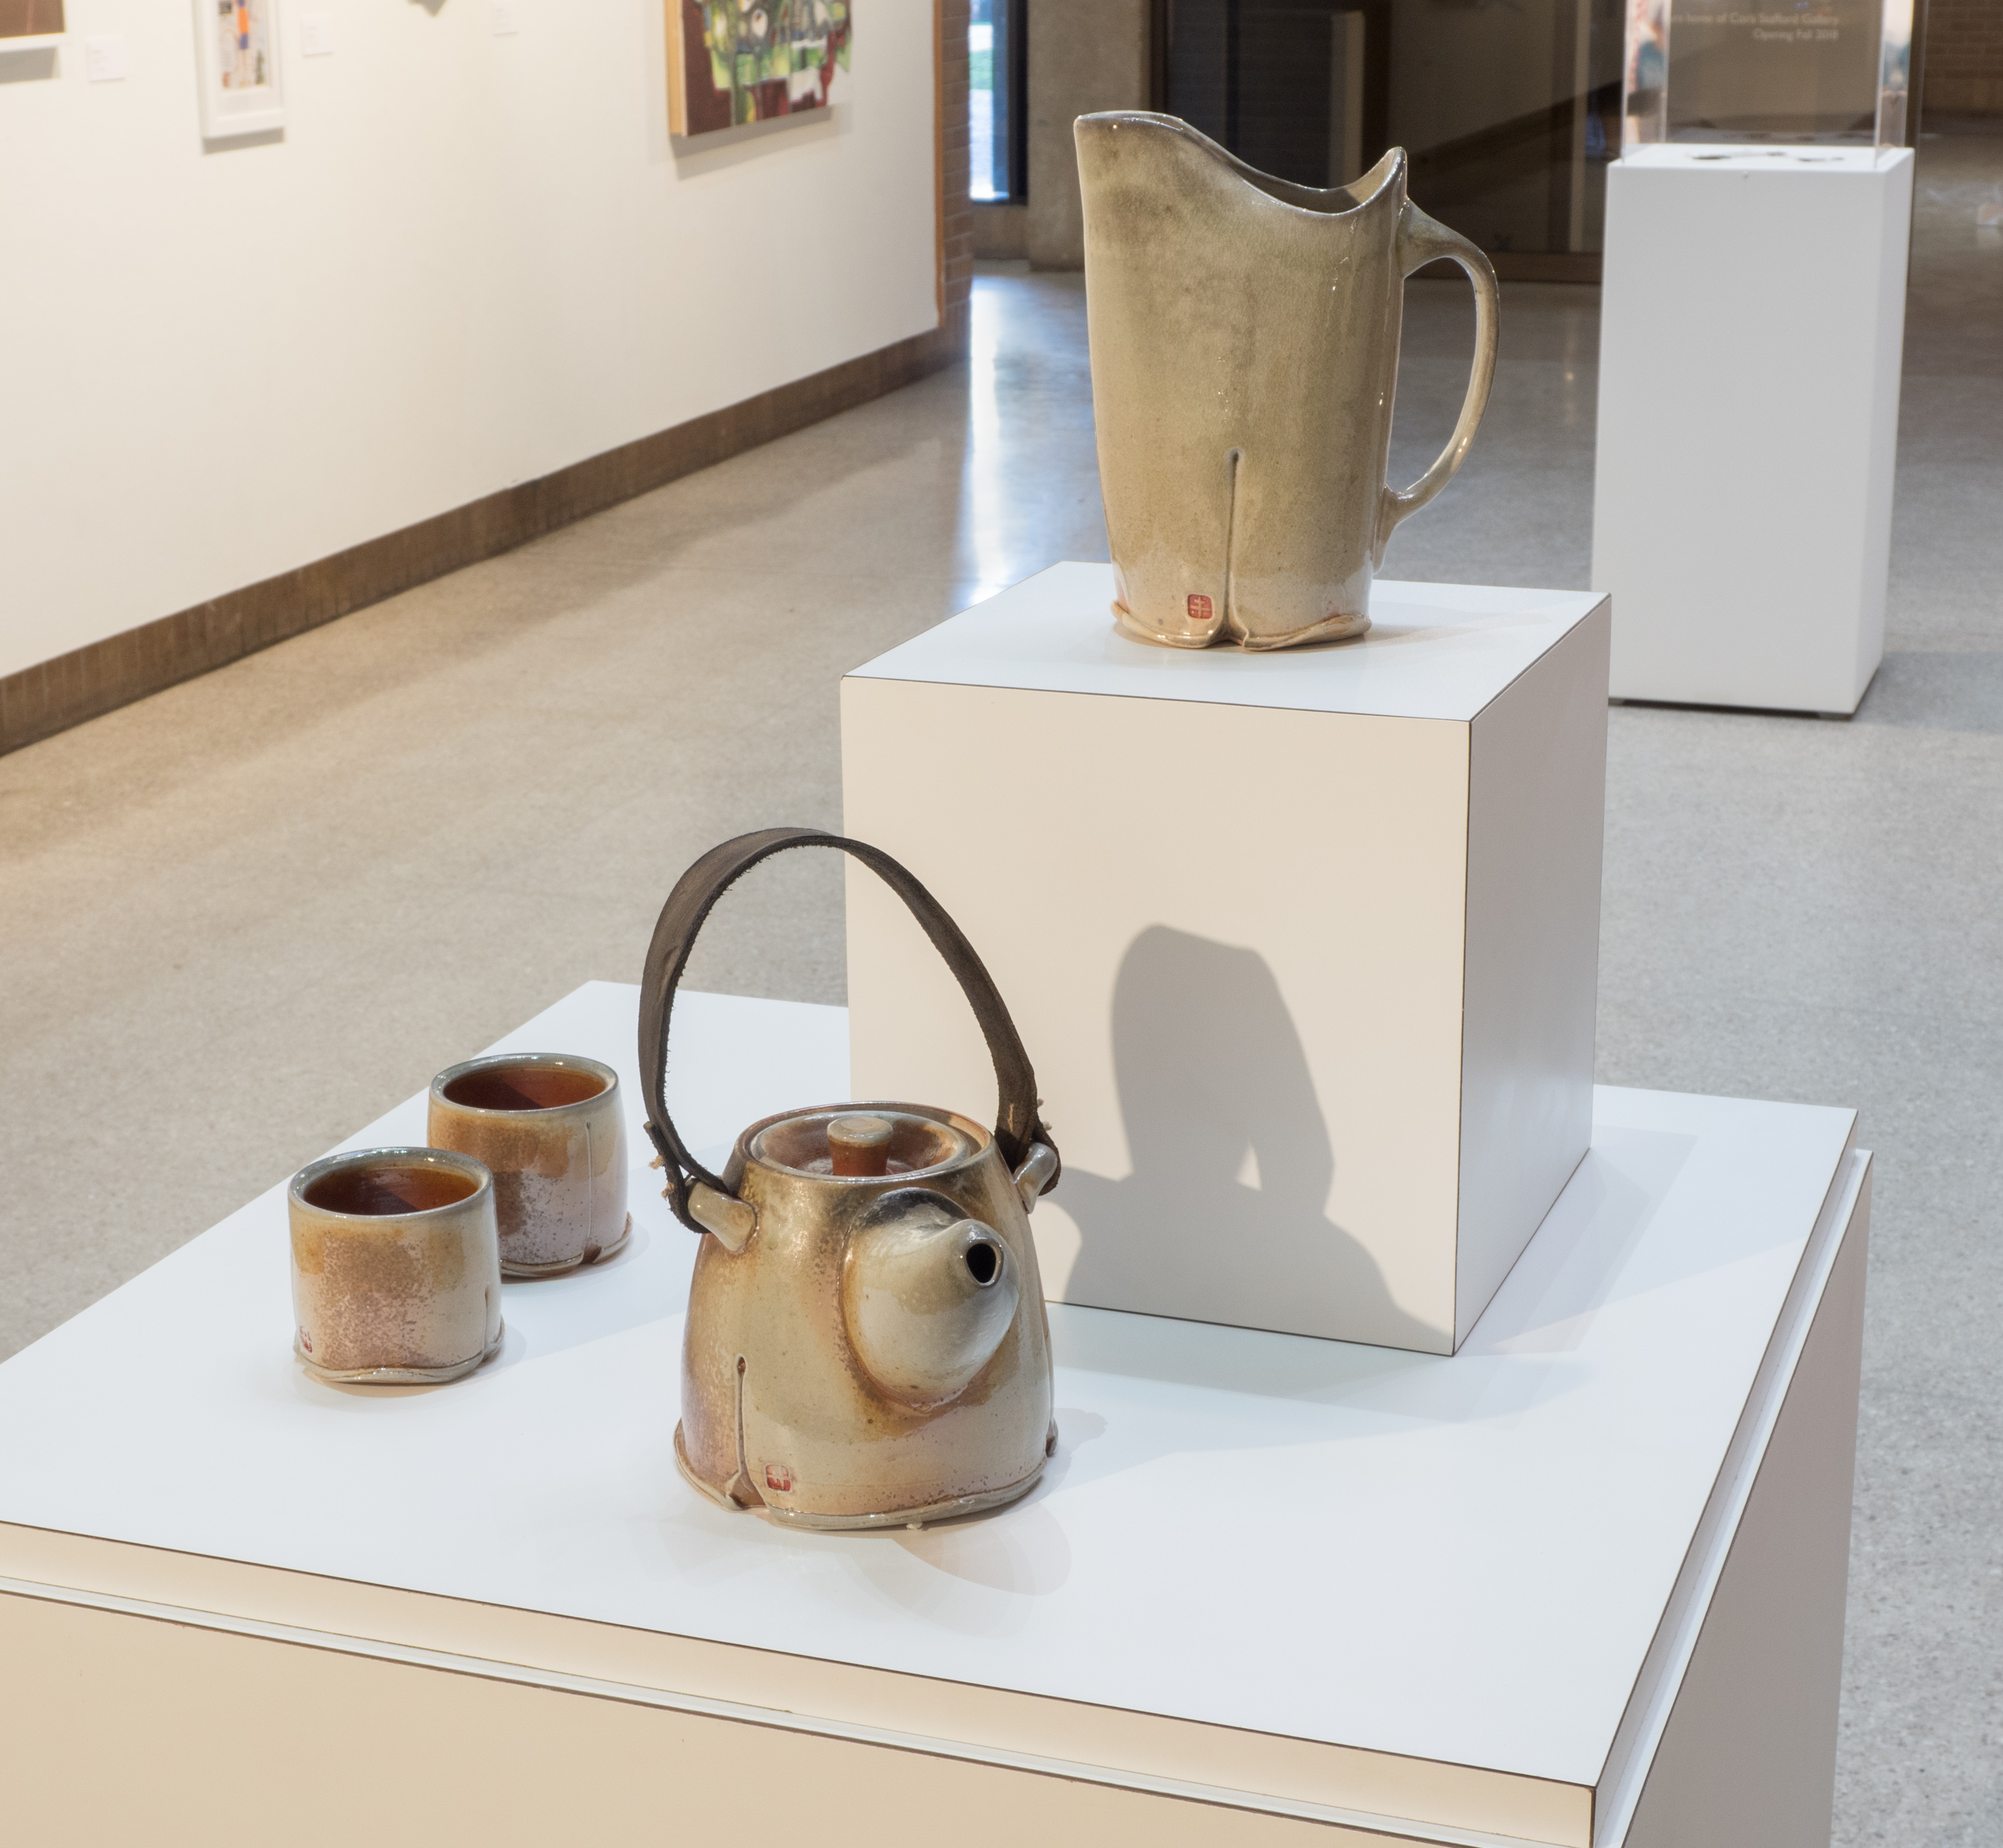 Shino Pitcher and Leather Strap Teapot Set by Horacio Casillas, winner of 3rd prize in the 2017 Voertman competition.